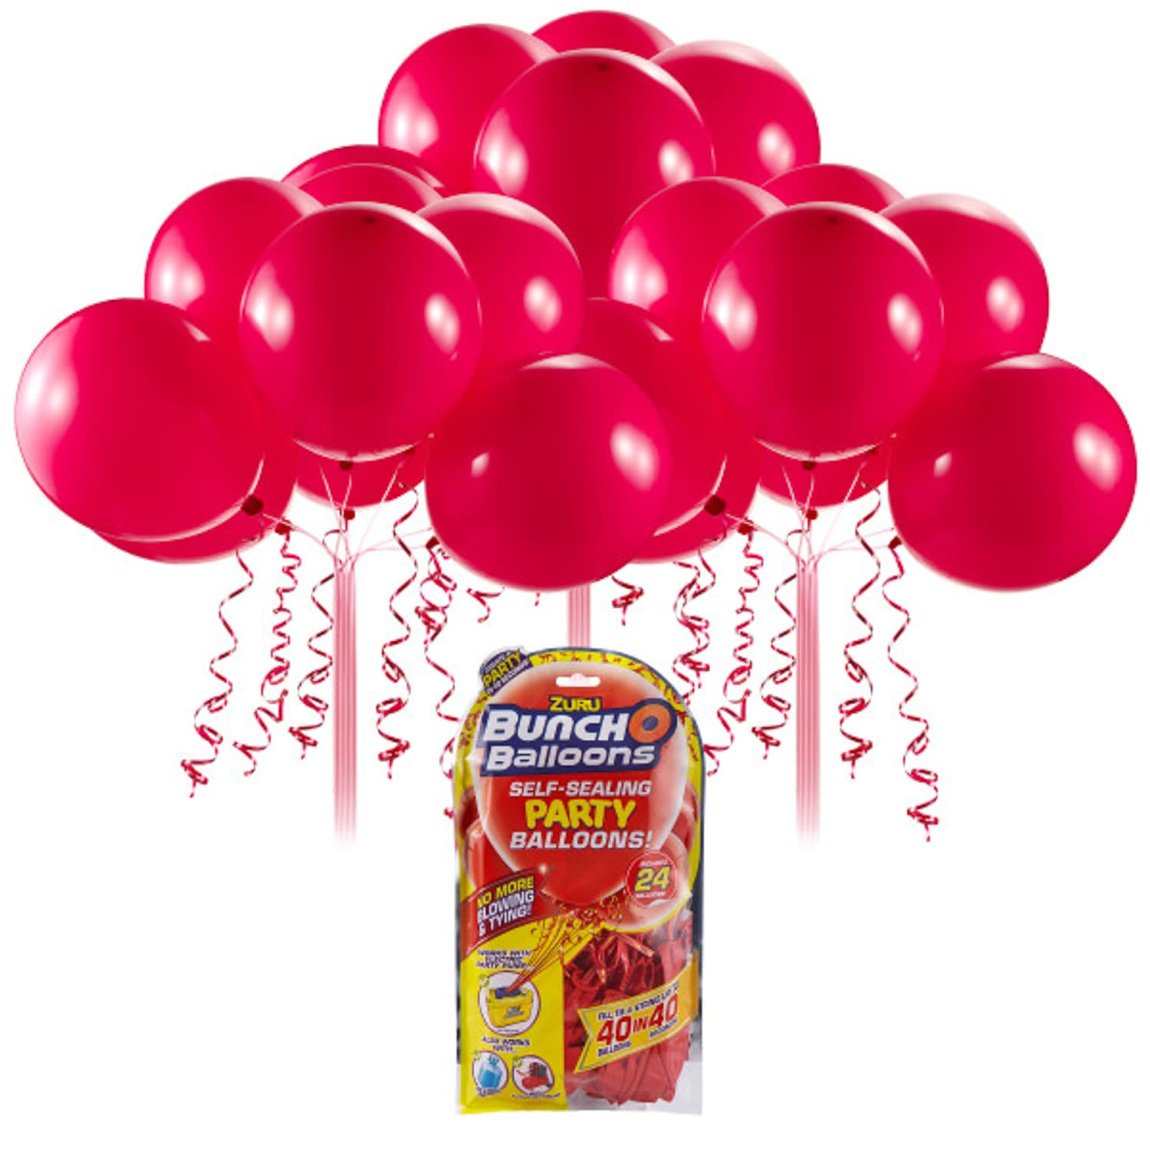 Zuru Self Sealing Party Balloons 24pk - Red